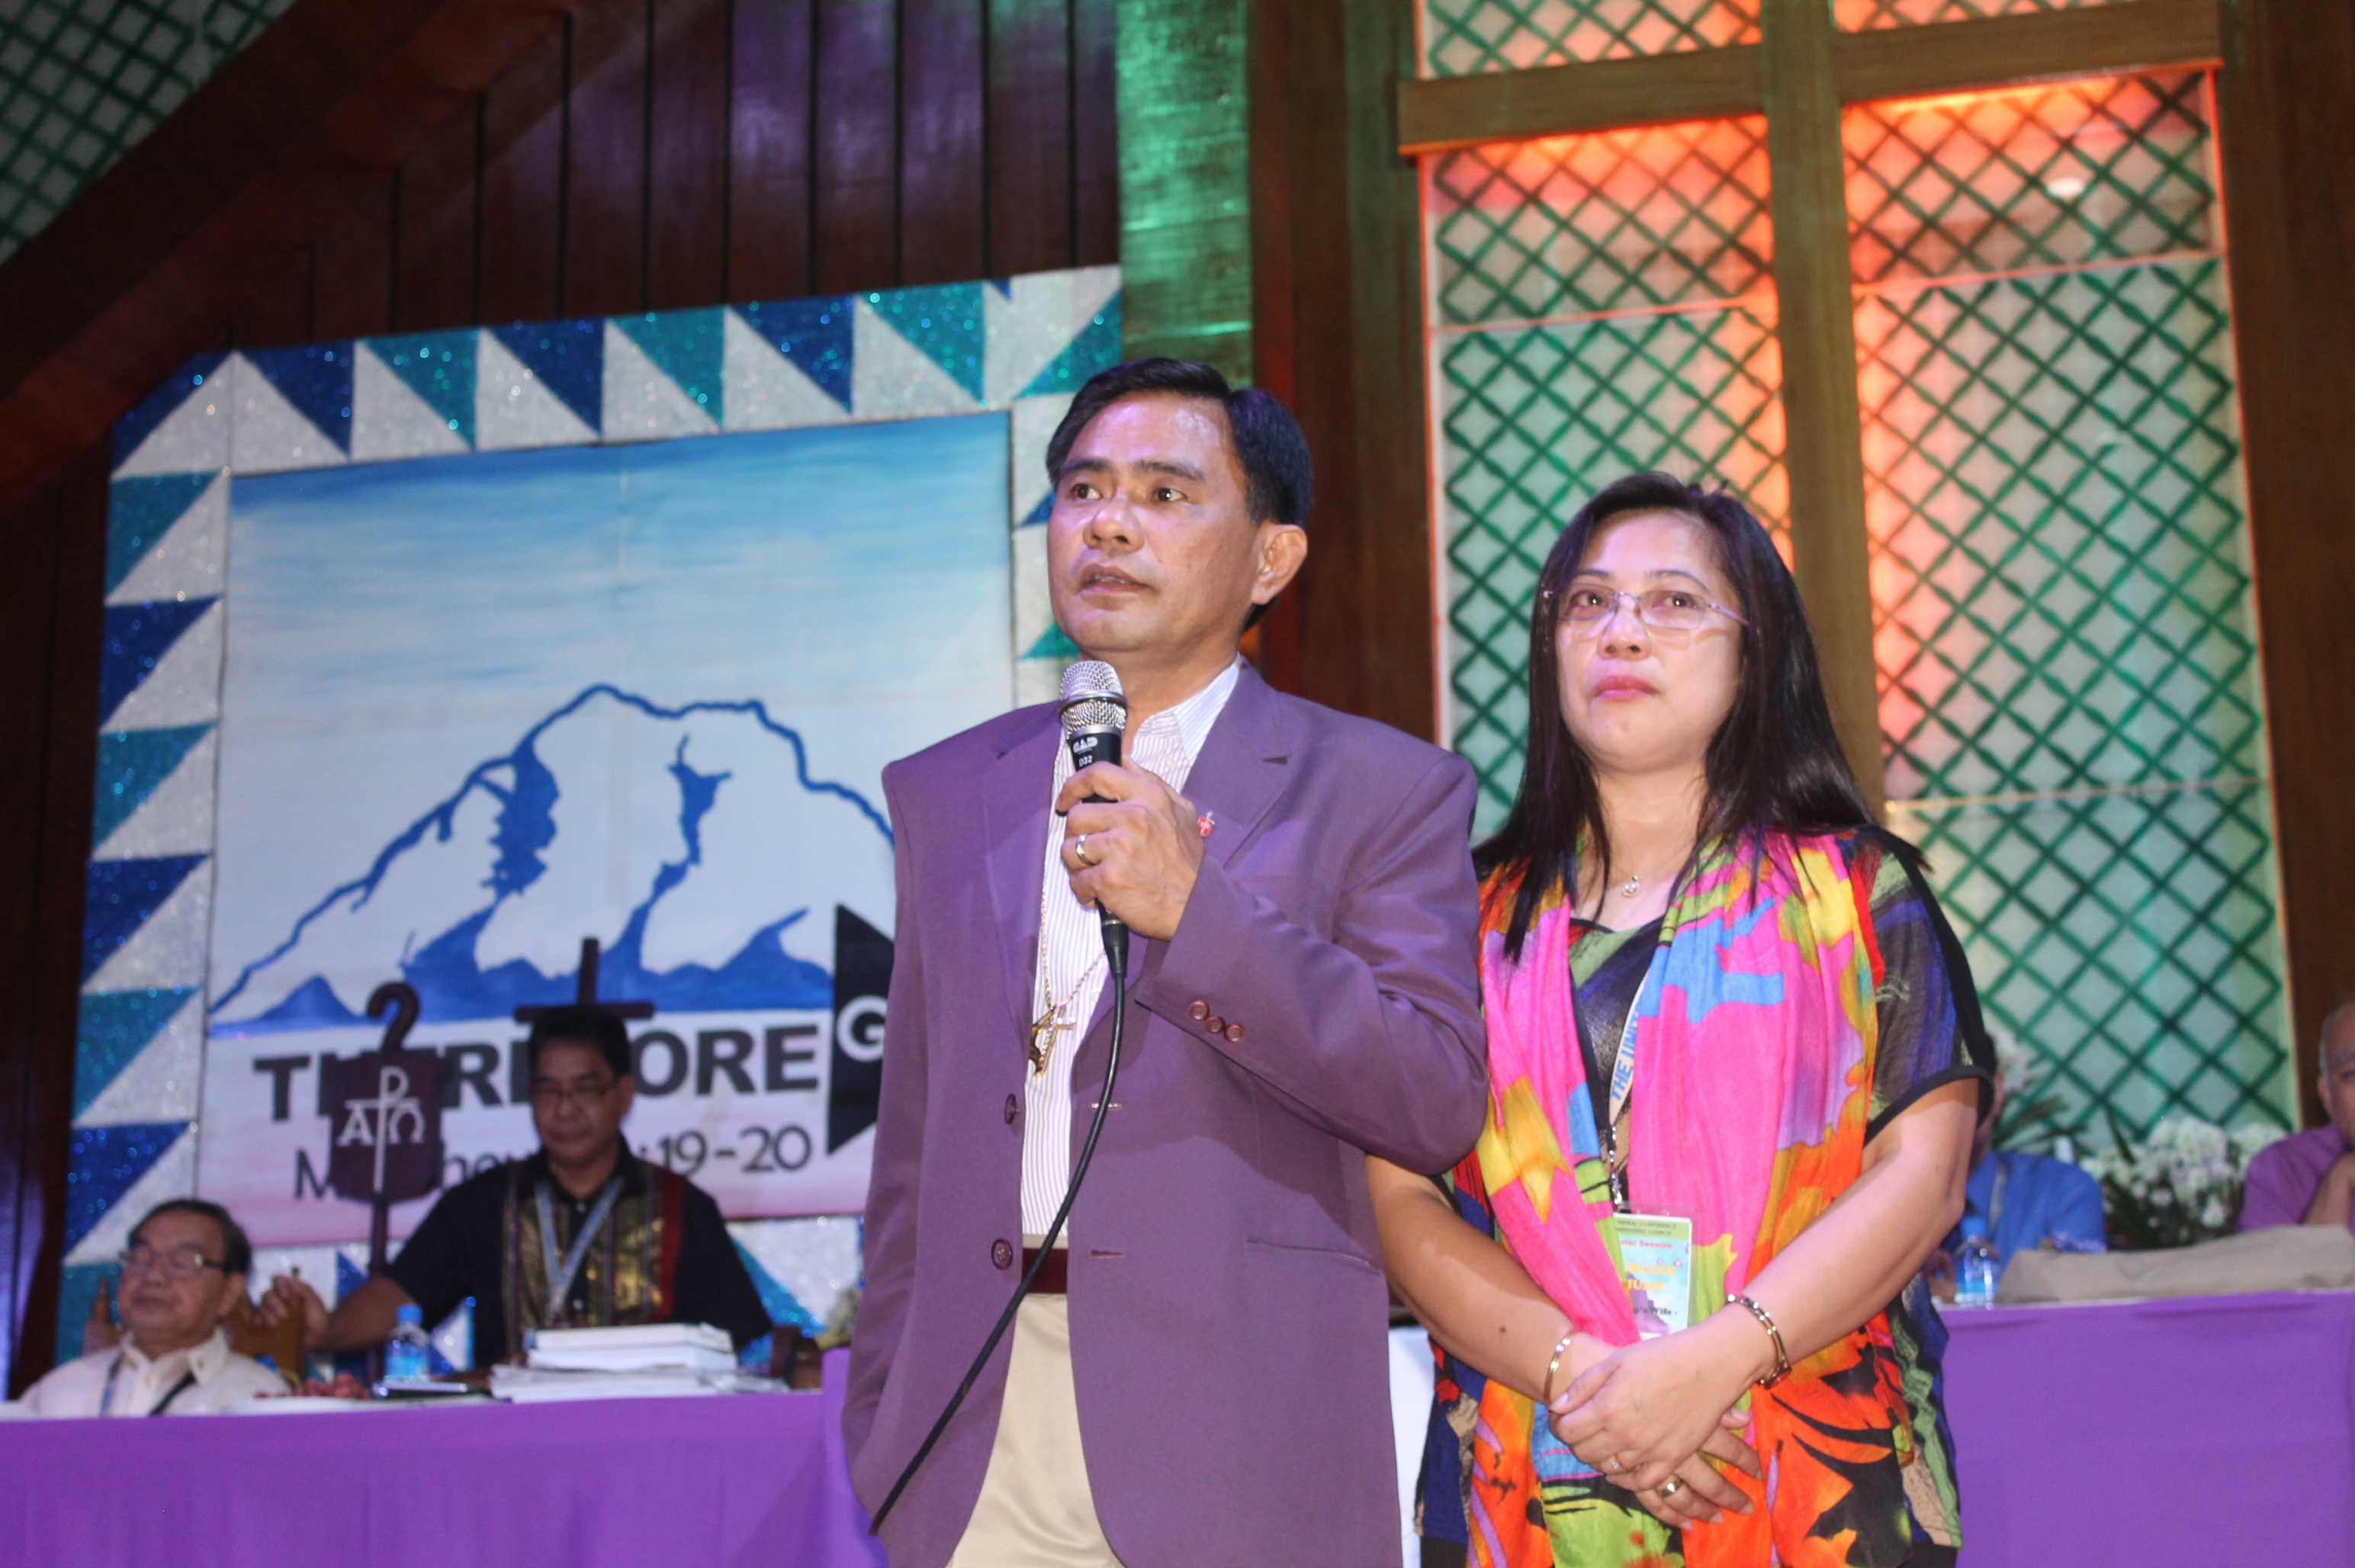 Bishop juan re elected assigned to davao area the united bishop juan re elected assigned to davao area the united methodist church m4hsunfo